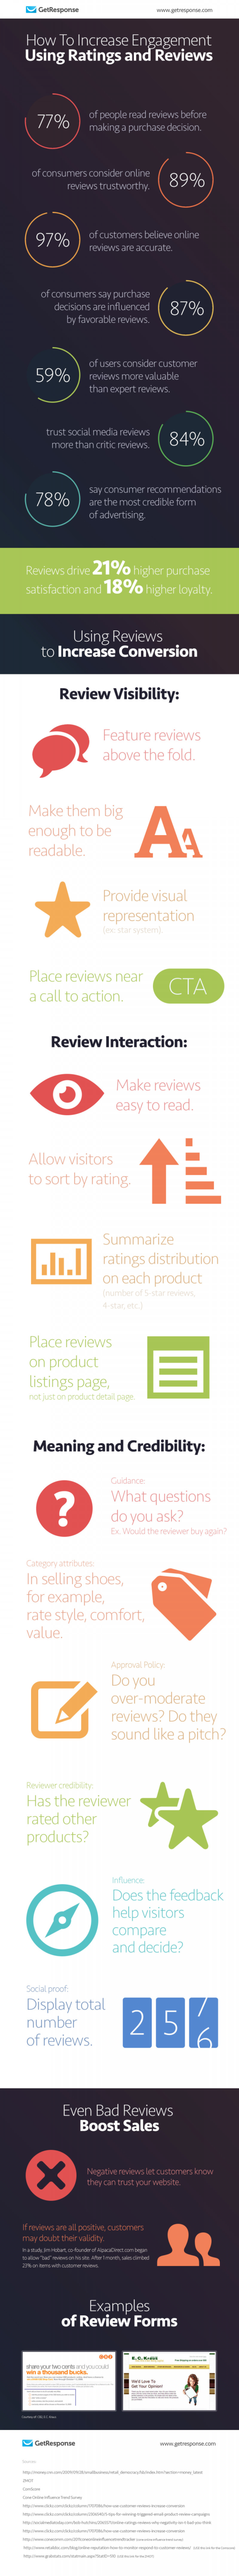 How to Increase Engagement of Readers Using Ratings & Reviews.  Infographic